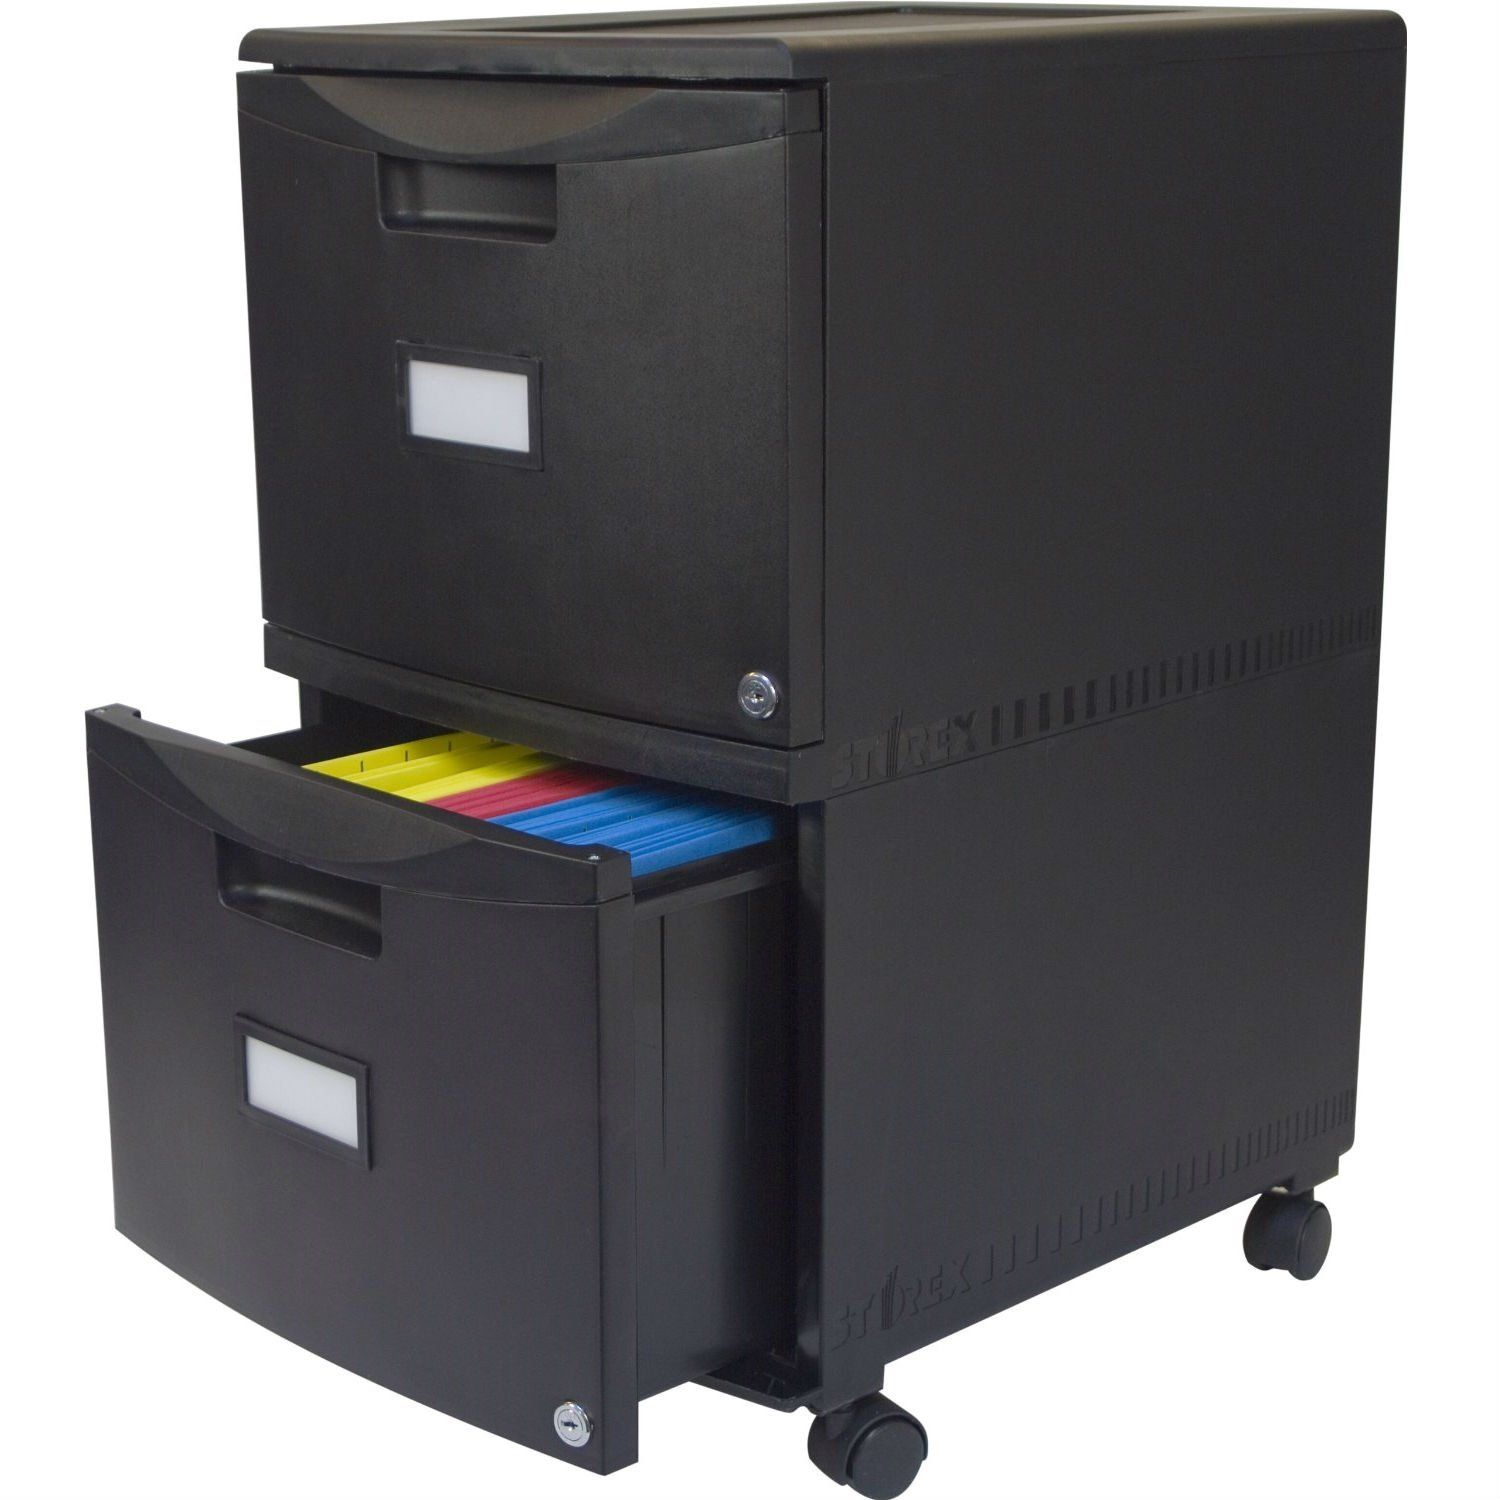 Black 2 Drawer Locking Letter Legal Size File Cabinet With Casters Wheels Filing Cabinet Mobile File Cabinet Drawers